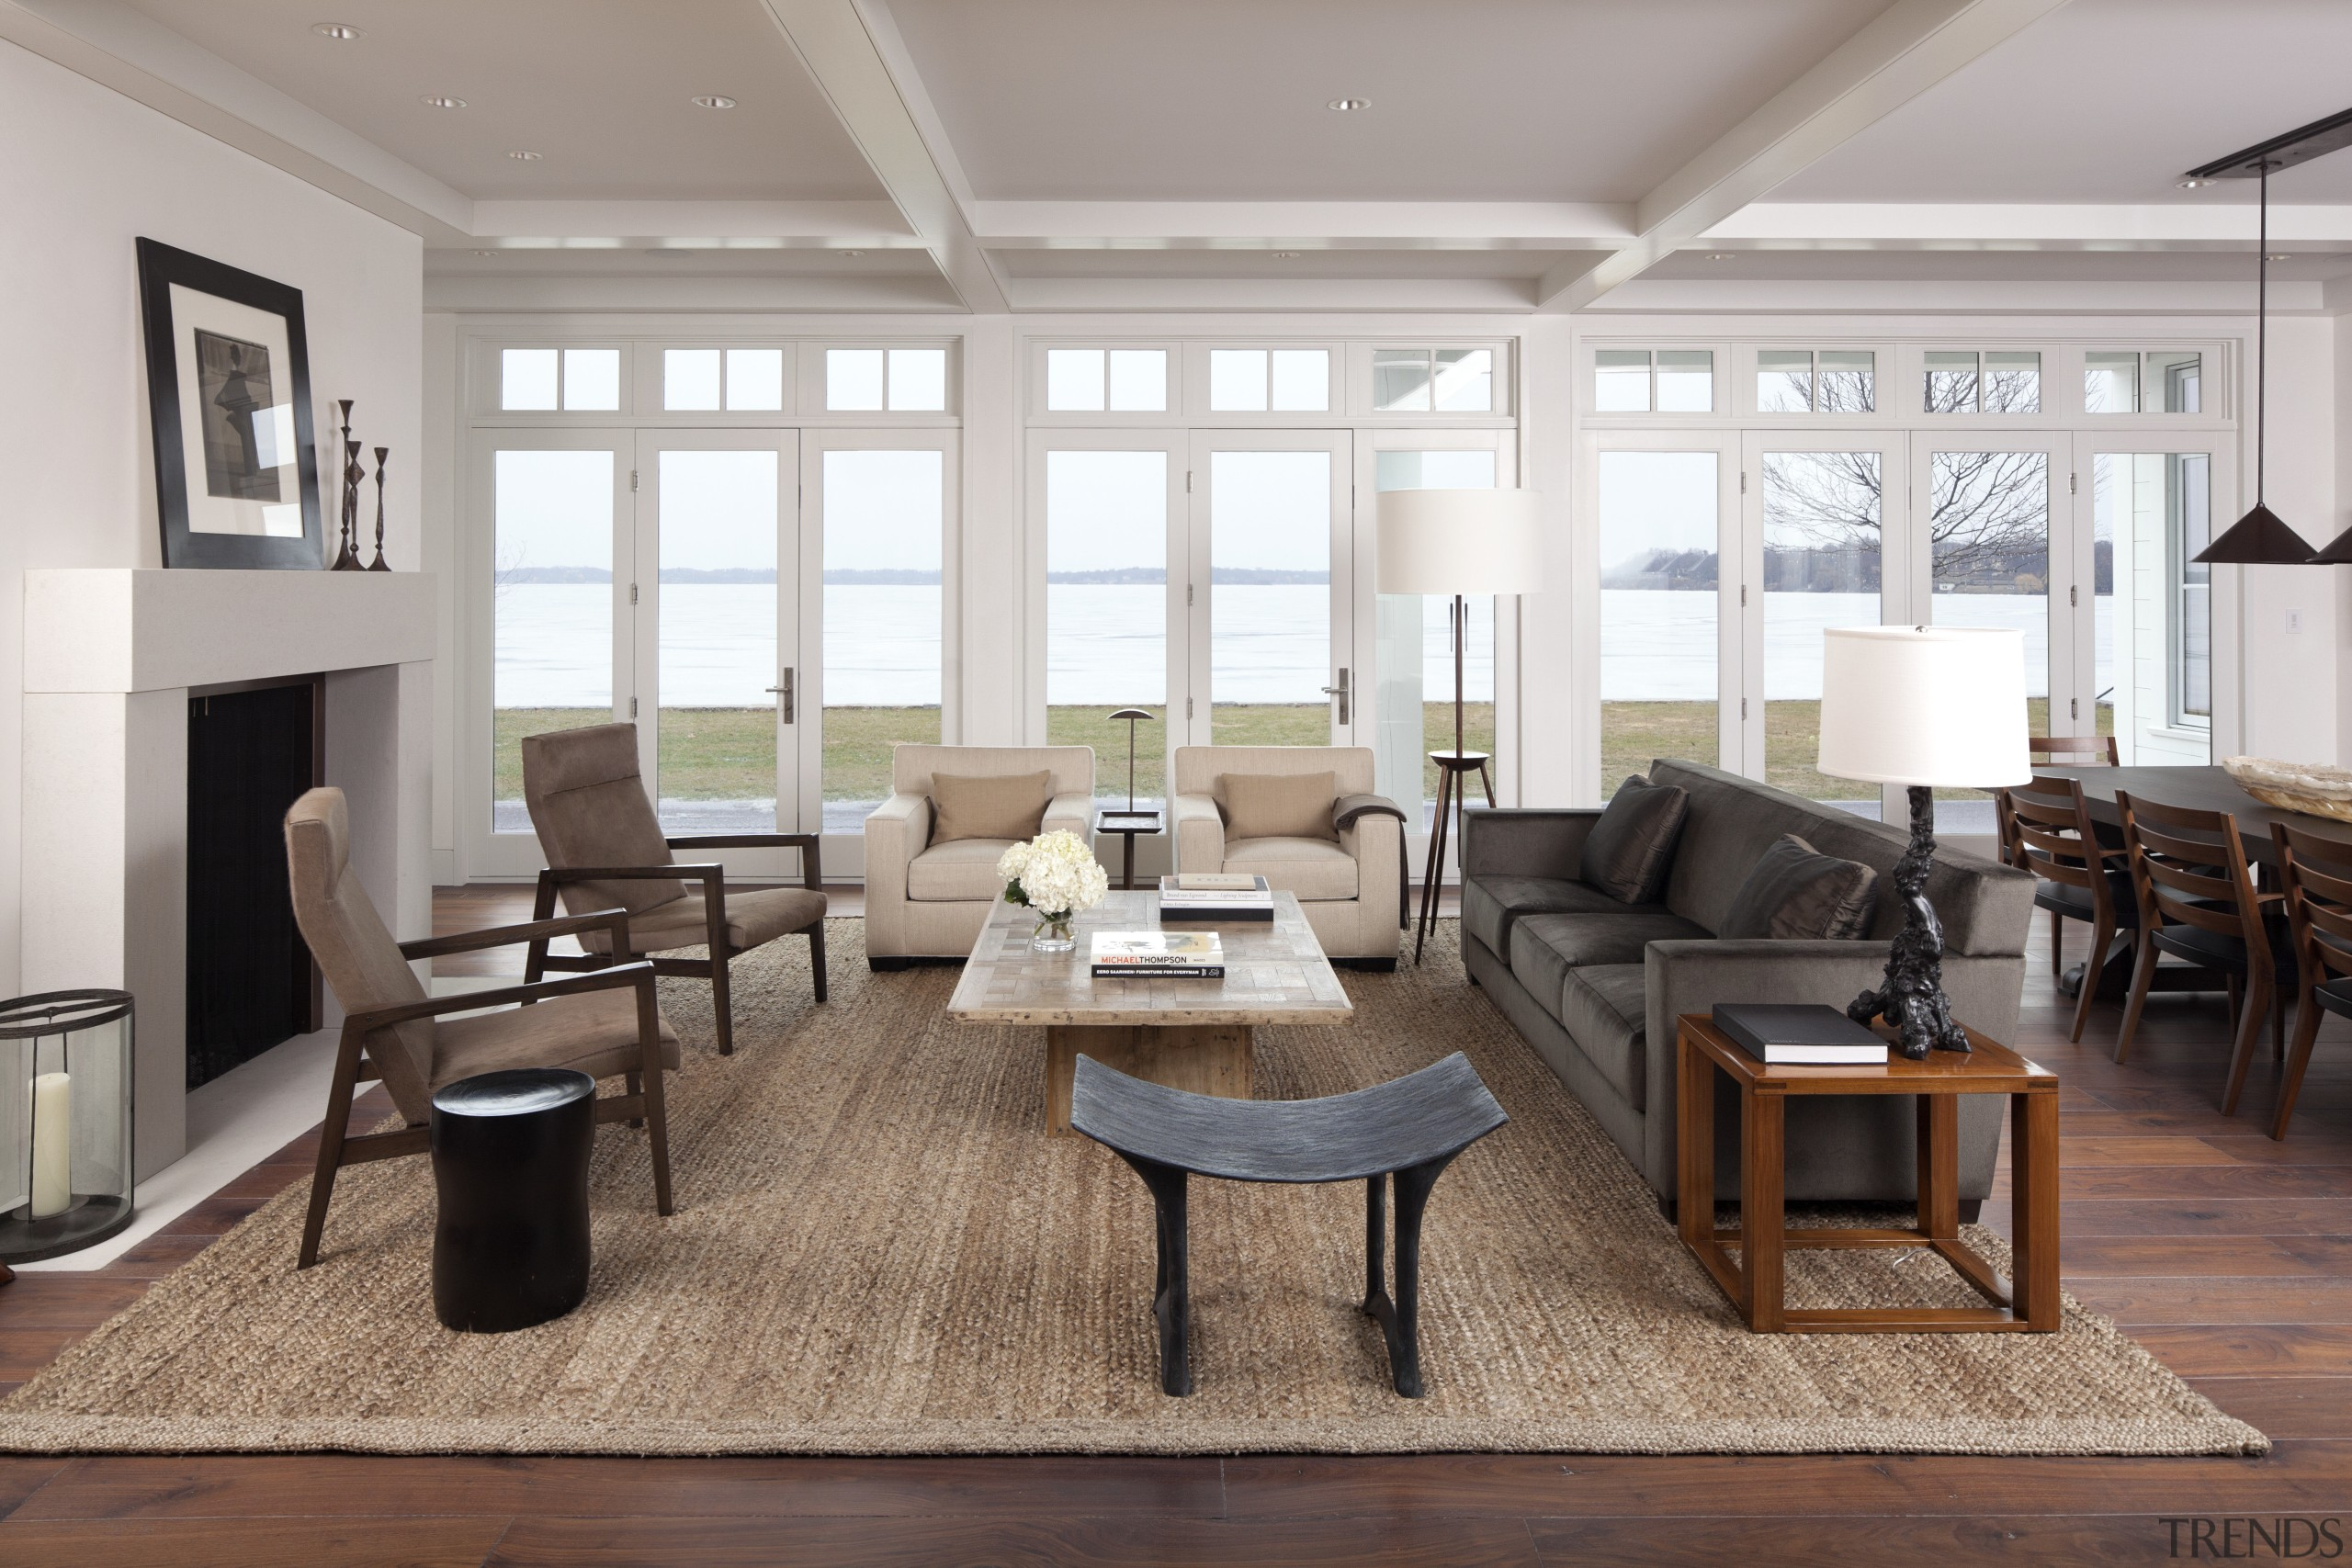 The living room of this lakefront house has chair, floor, flooring, furniture, interior design, living room, room, table, gray